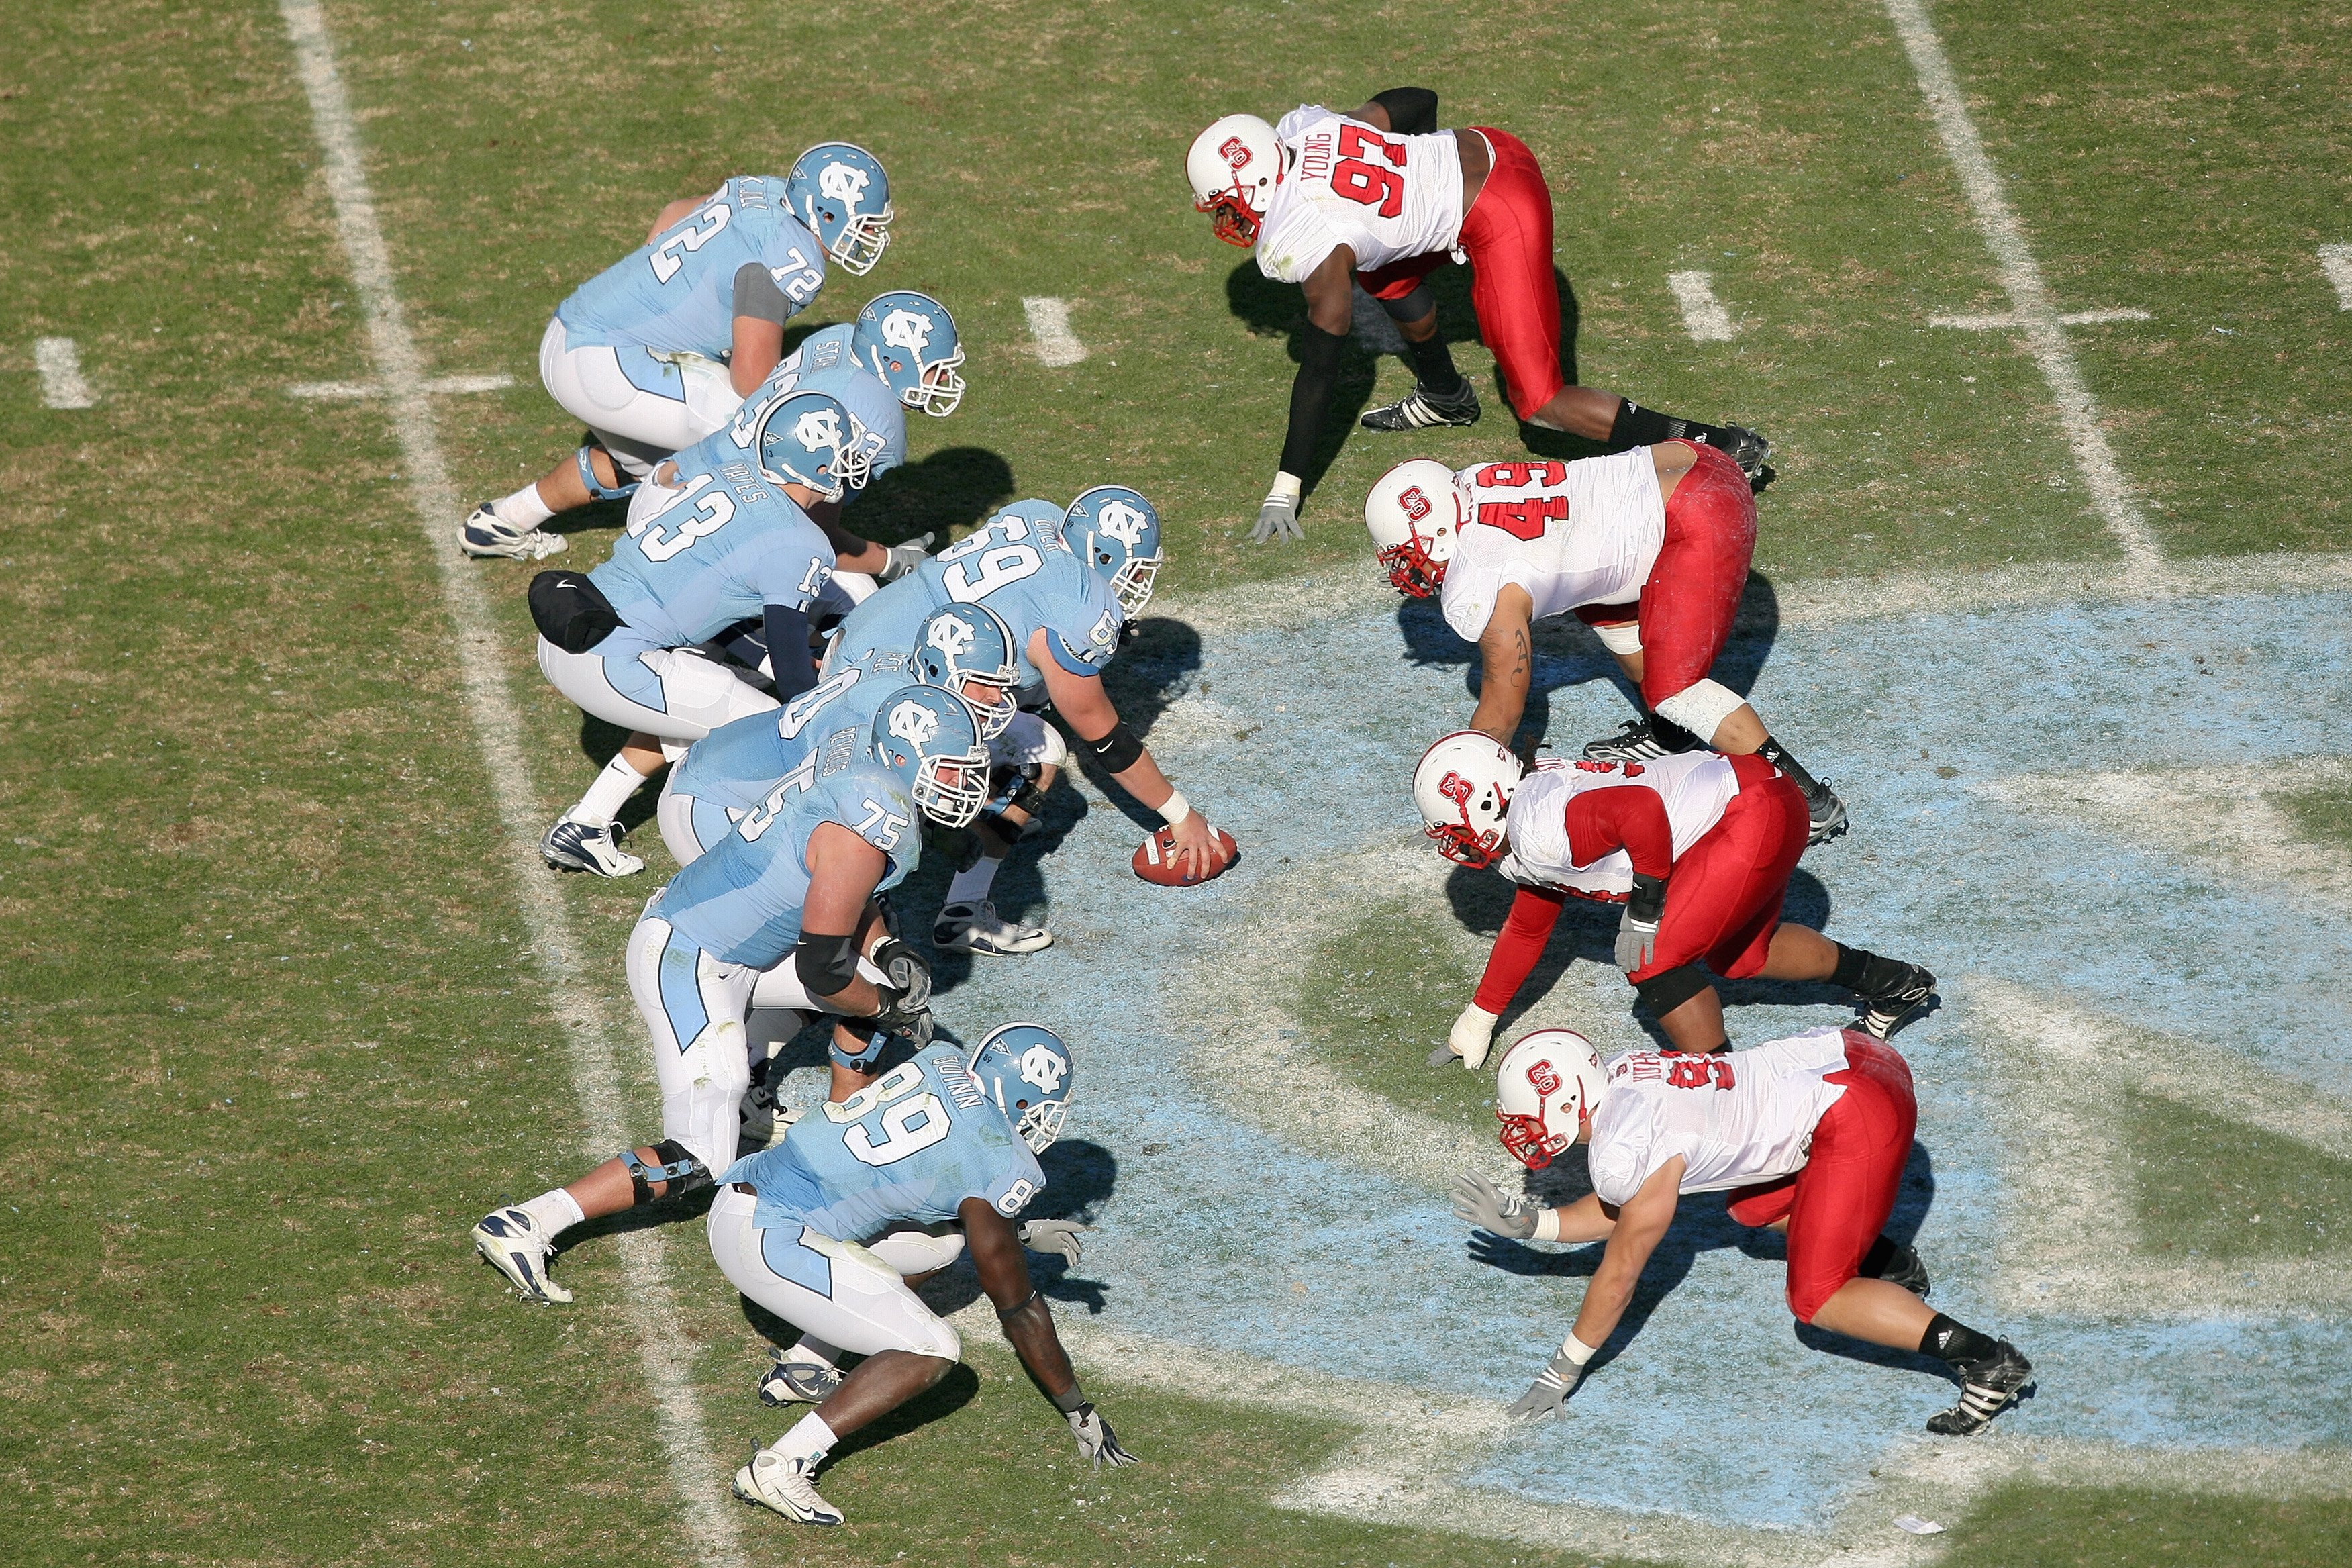 CHAPEL HILL, NC - NOVEMBER 22: A general view of the North Carolina State Wolfpack lining up against the North Carolina Tar Heels during the game at Kenan Stadium on November 22, 2008 in Chapel Hill, North Carolina. (Photo by Streeter Lecka/Getty Images)